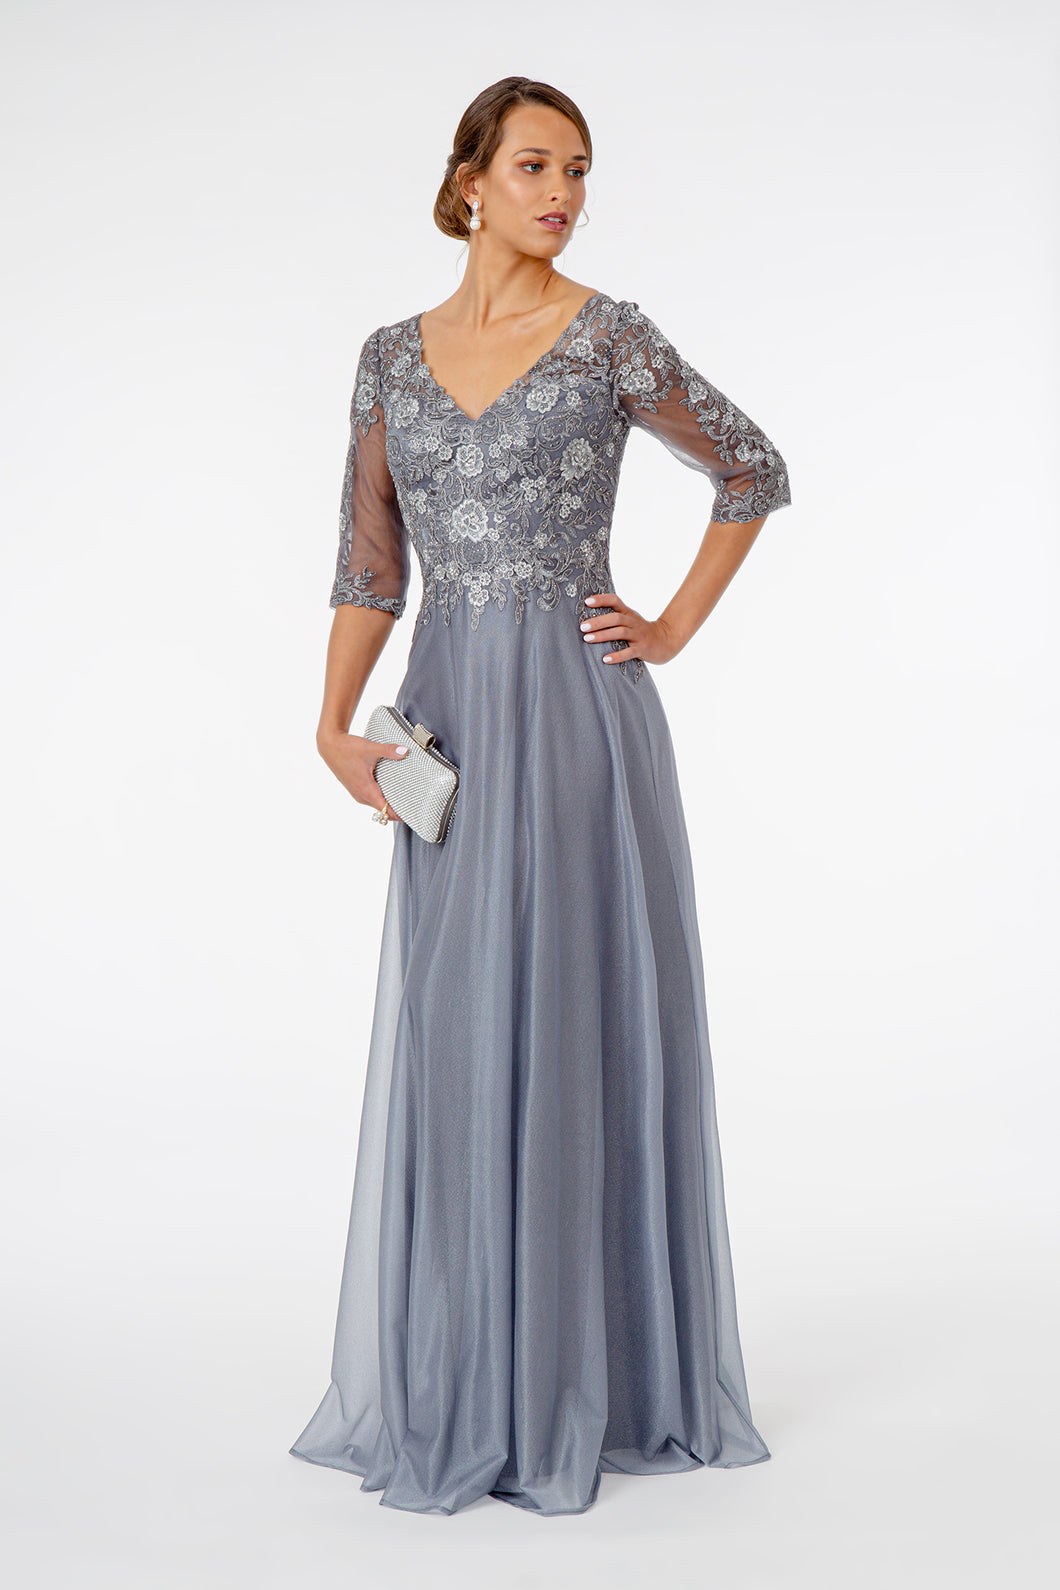 Sarah Mothers Dress with 3/4 Length Sleeves and Long Skirt G1825EE-Silver SAMPLE IN STORE